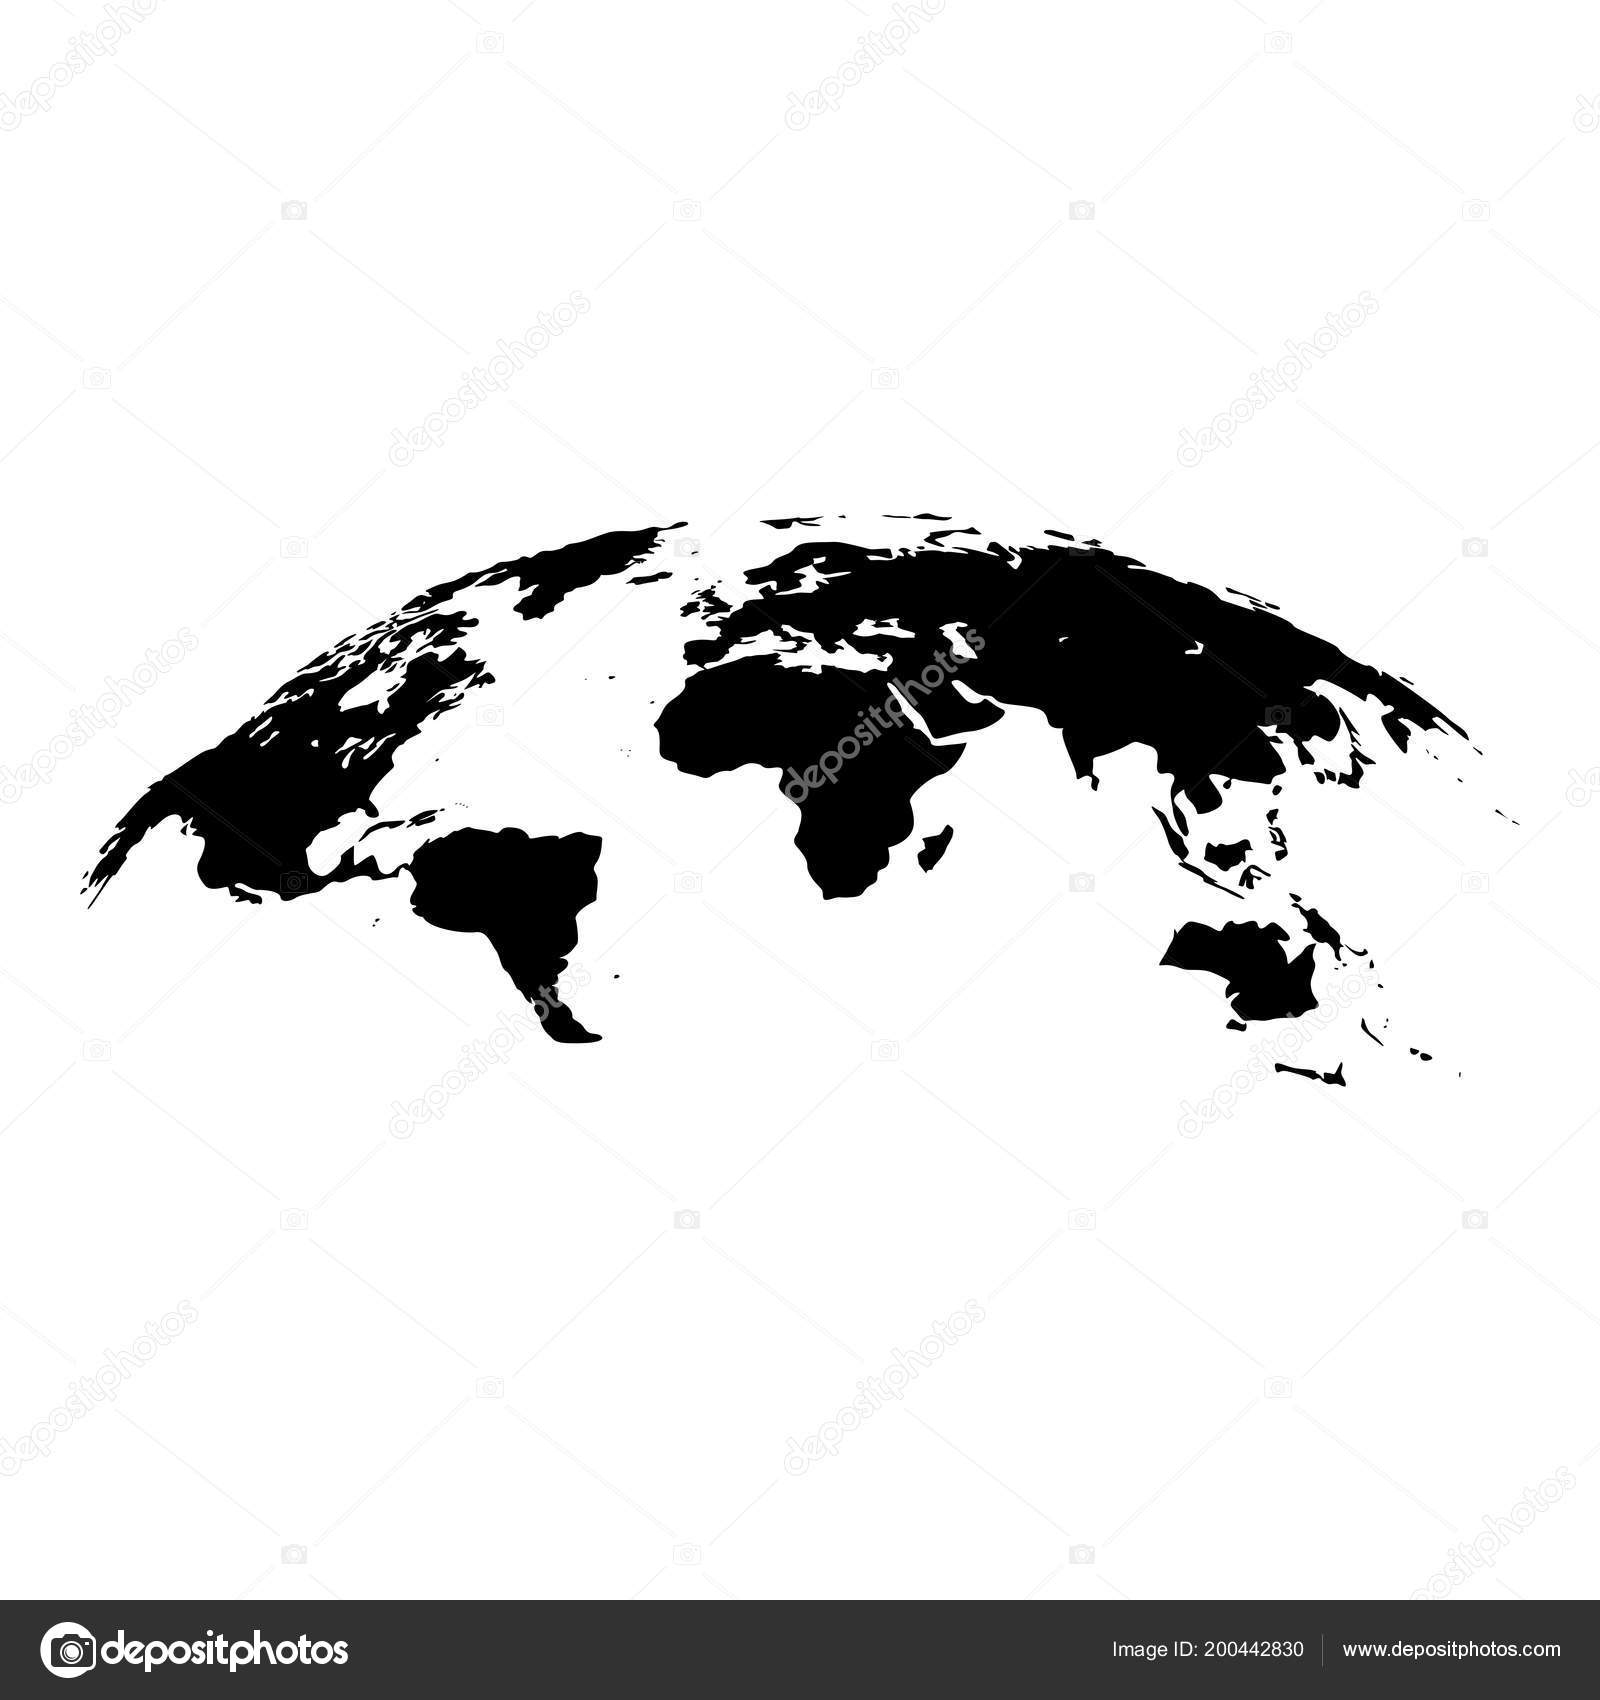 Image of: Map World Effect Surface Icon Black Color Vector Illustration Flat Stock Vector C Seregasss435 200442830